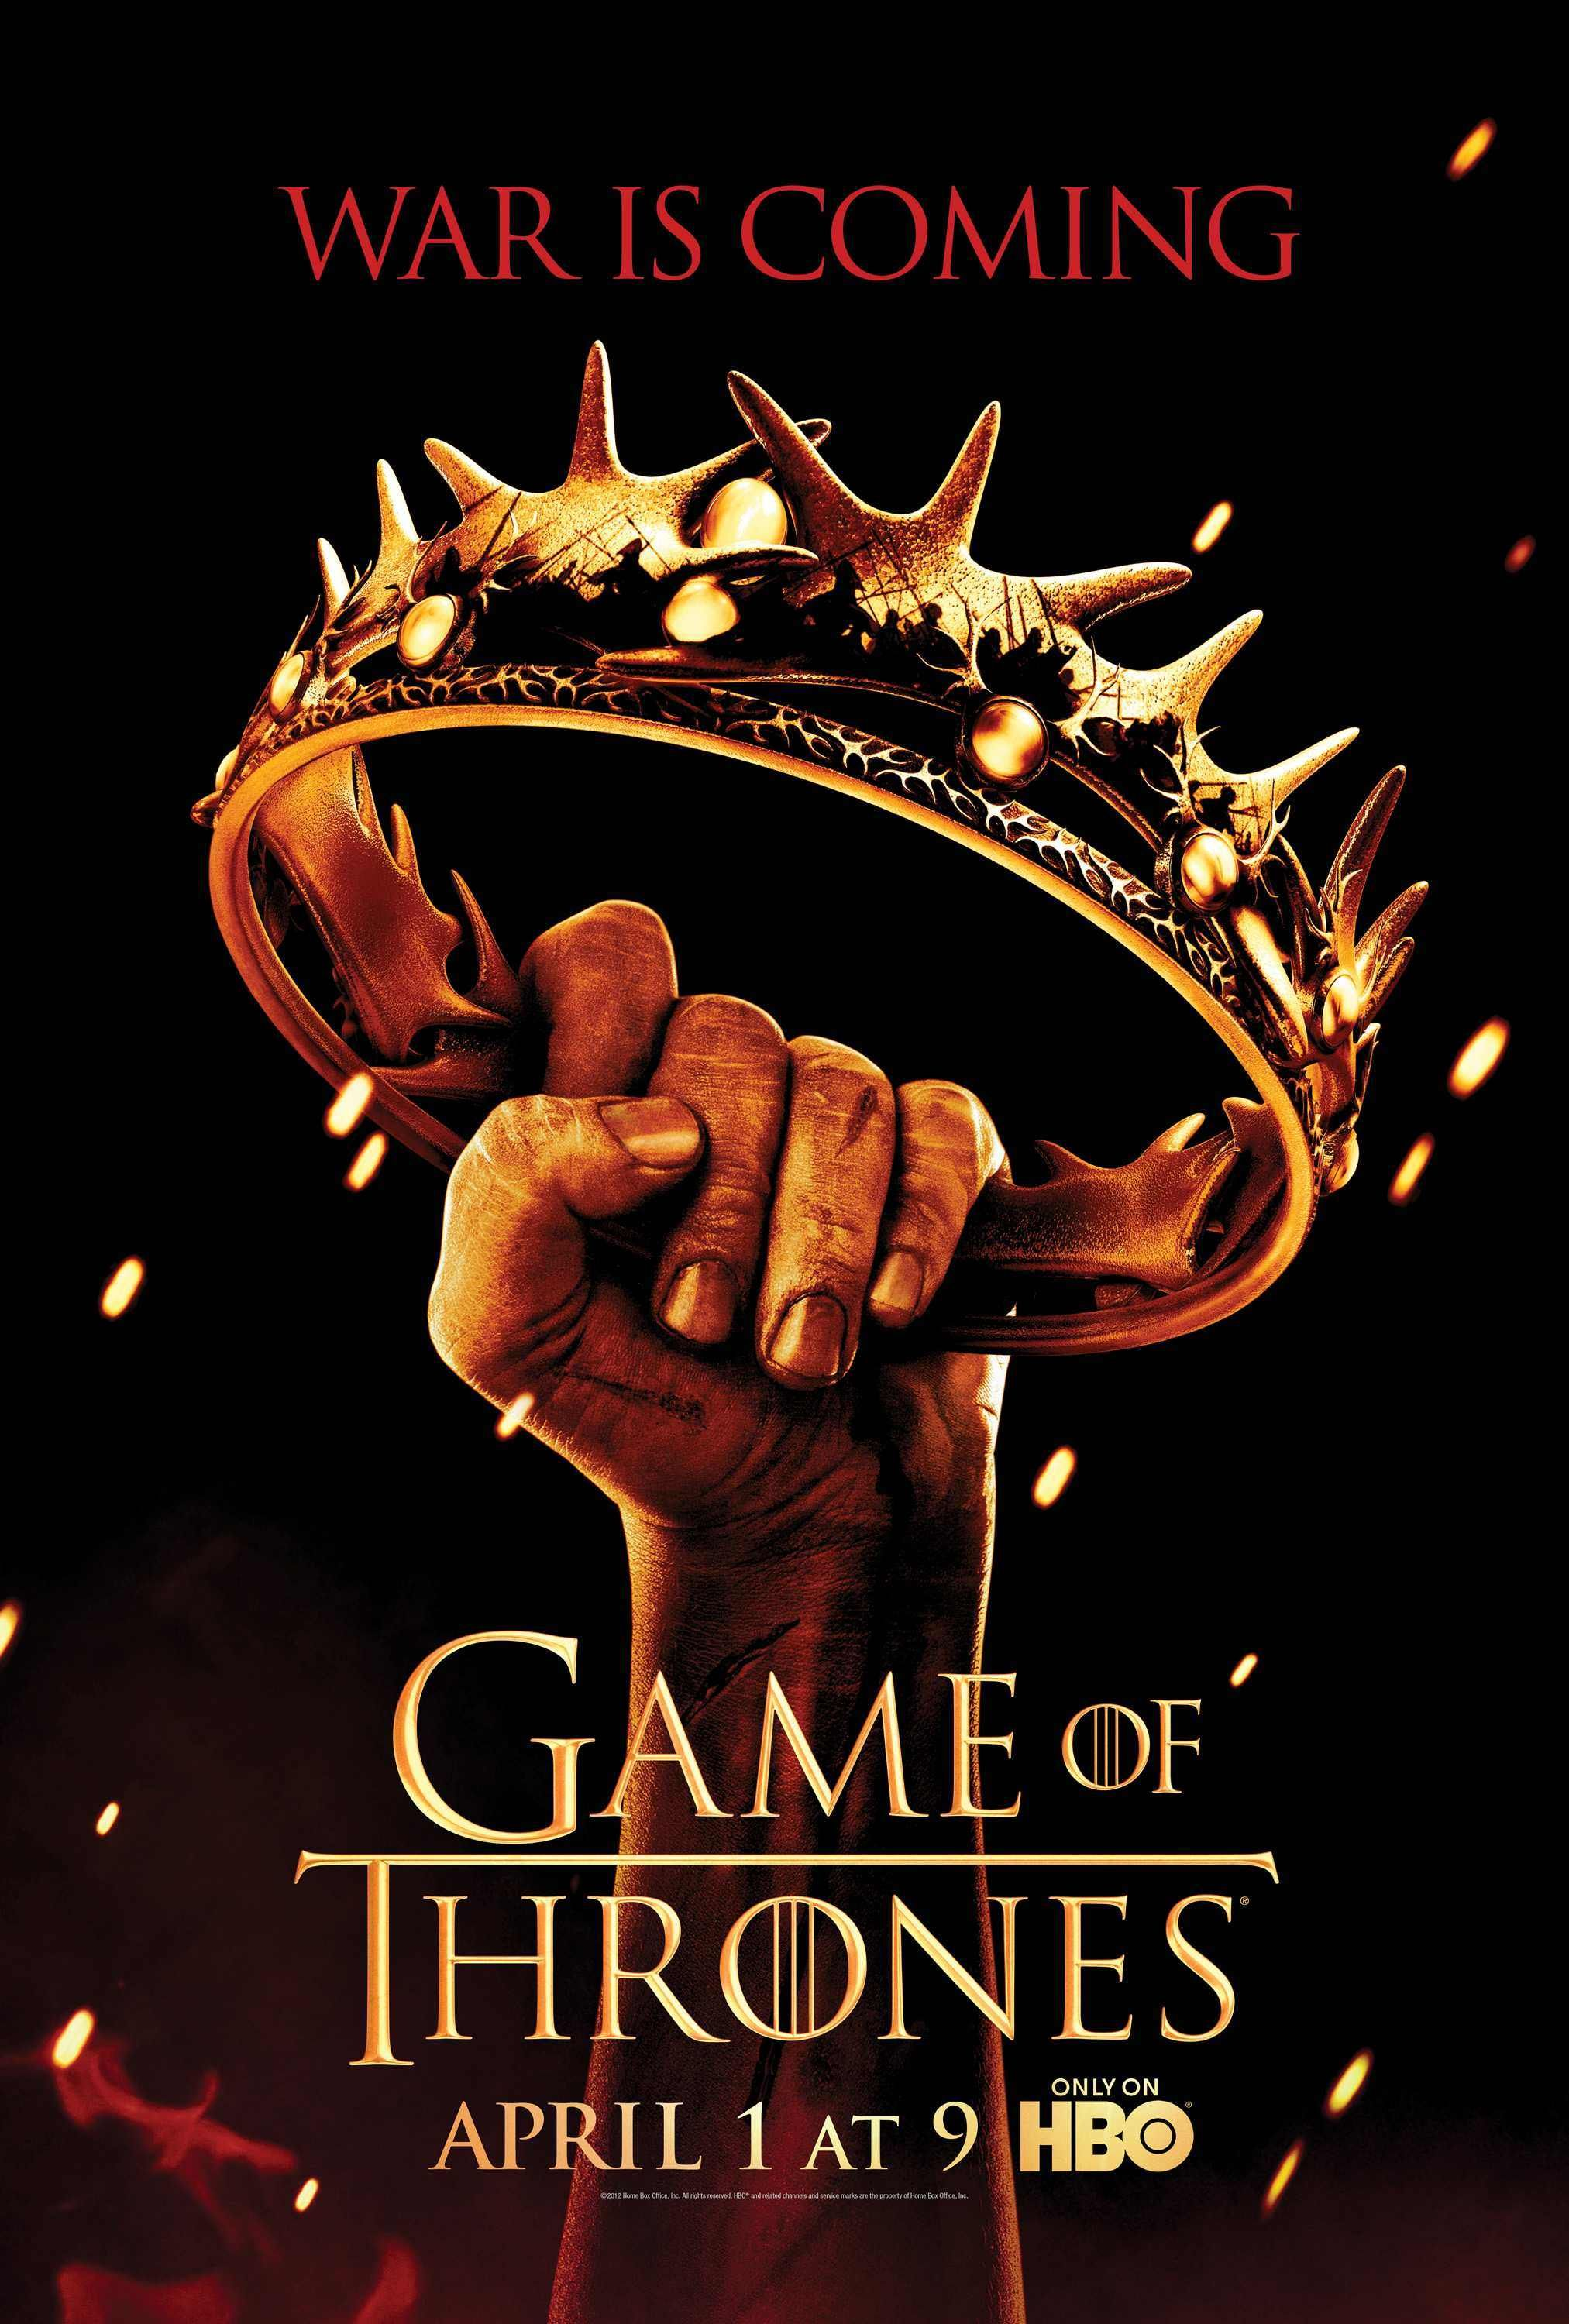 Game Of Thrones 2sezon 3bölüm 1080p Altyazılı Izle Game Of